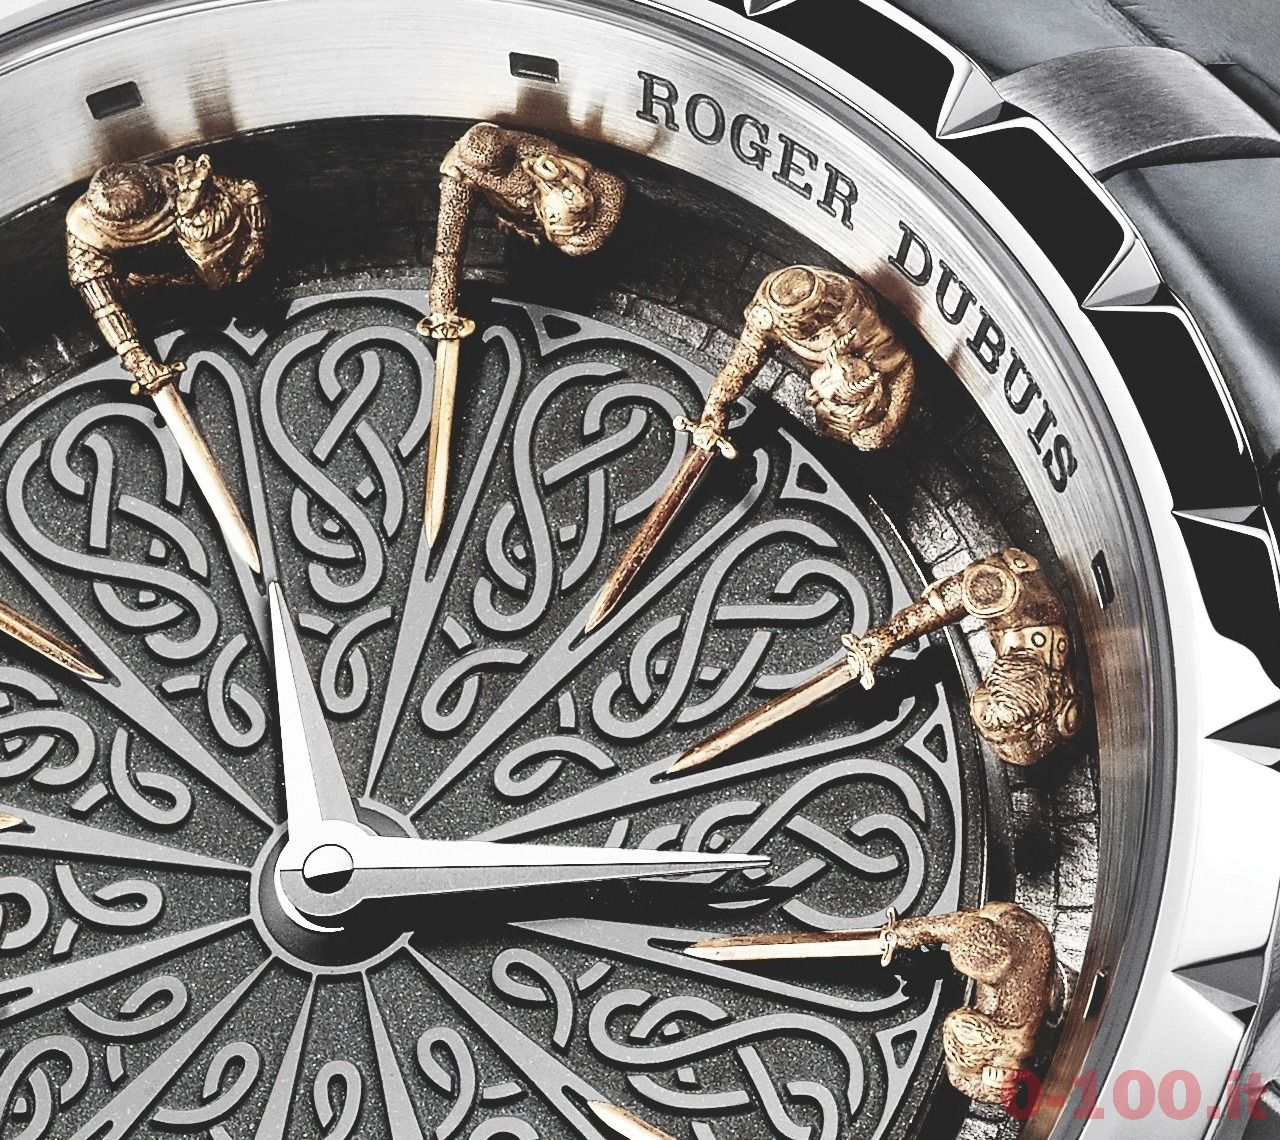 Knights Of Round Table Watch Roger Dubuis Excalibur Knights Of The Round Table Limited Edition